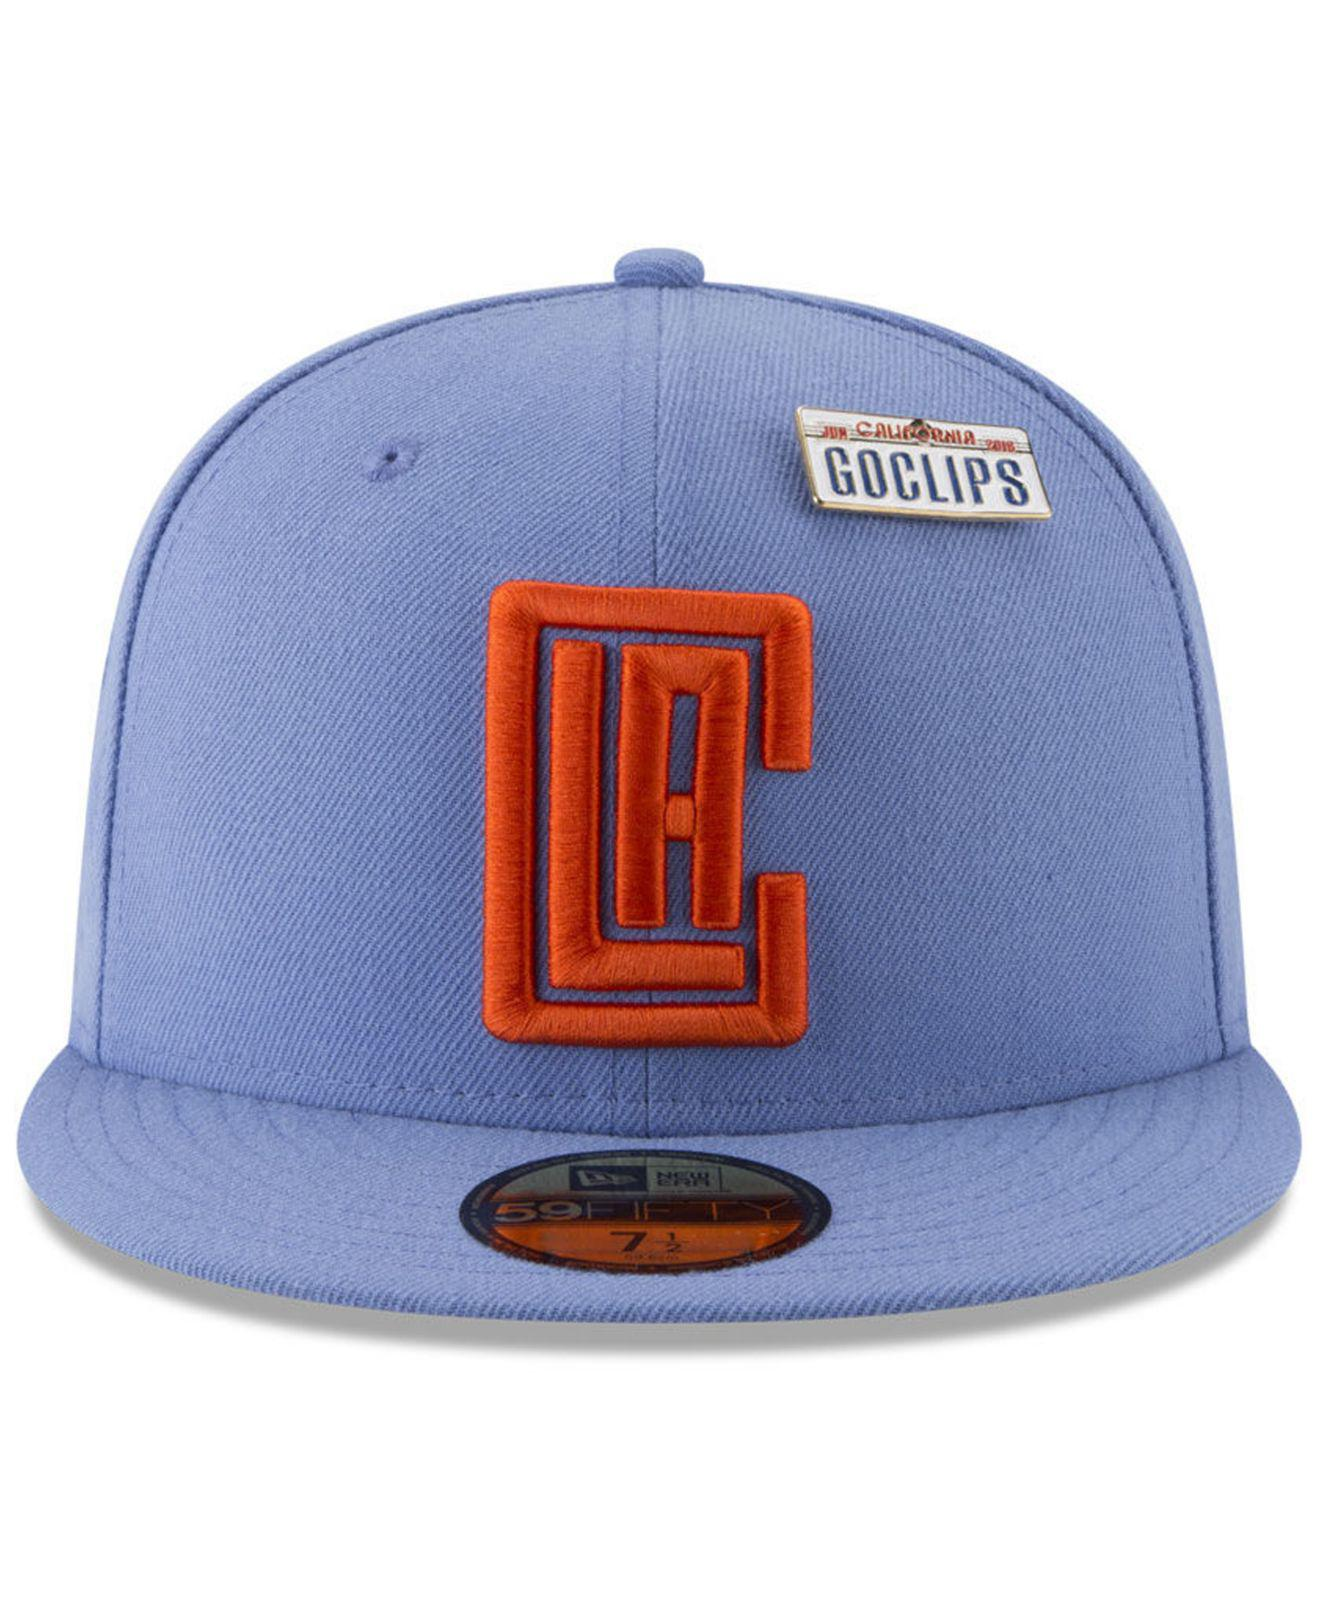 super popular eeaa4 8cf96 Lyst - KTZ Los Angeles Clippers City On-court 59fifty Fitted Cap in Blue  for Men